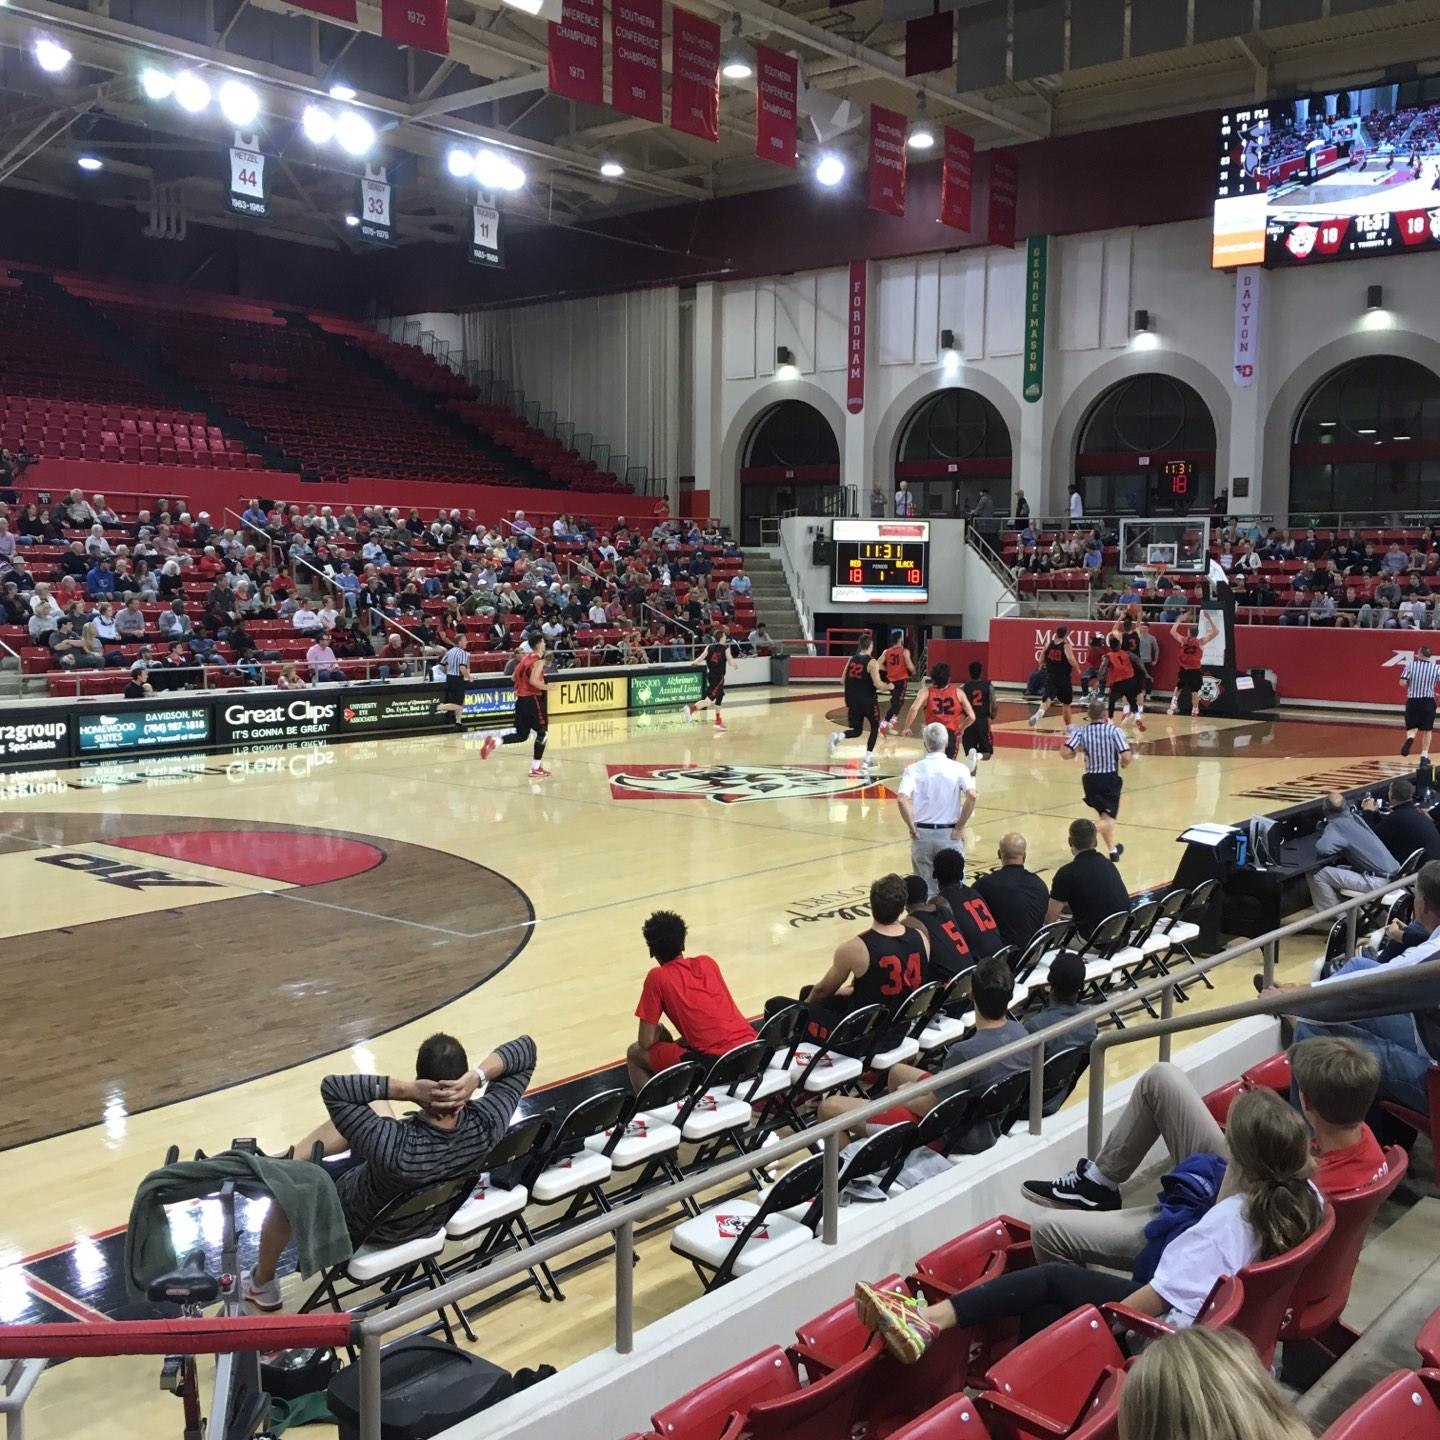 John M. Belk Arena Section 16 Row H Seat 1